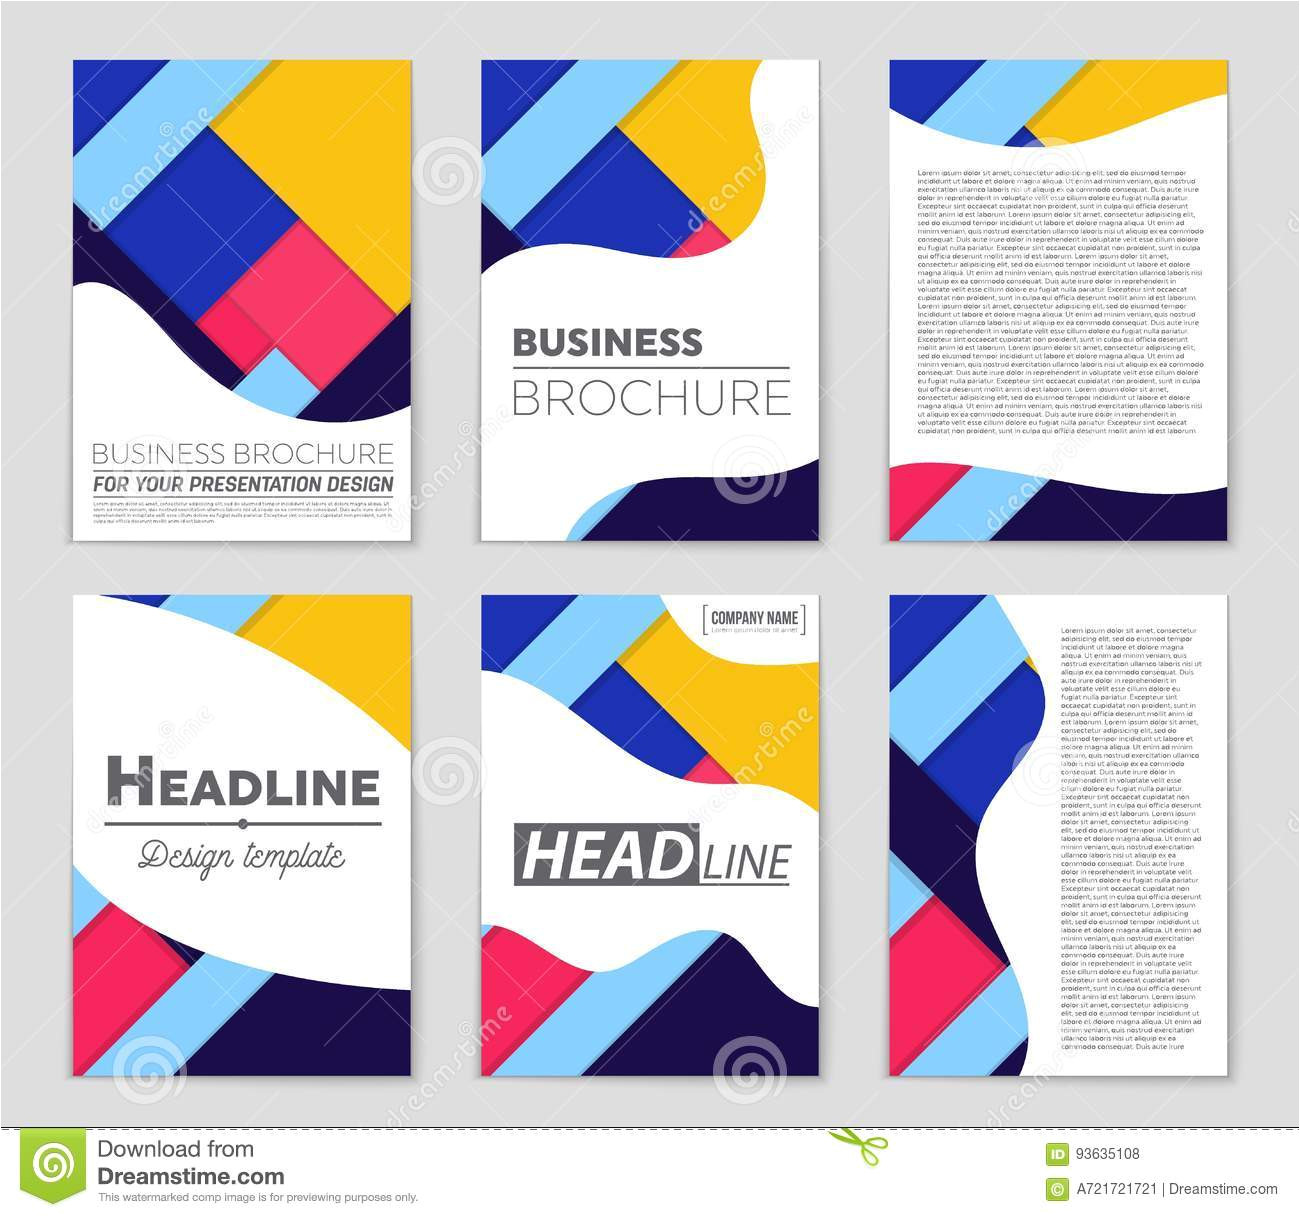 abstract layout background set art template design list front page mockup brochure theme style banner idea cover booklet print 93635108 jpg